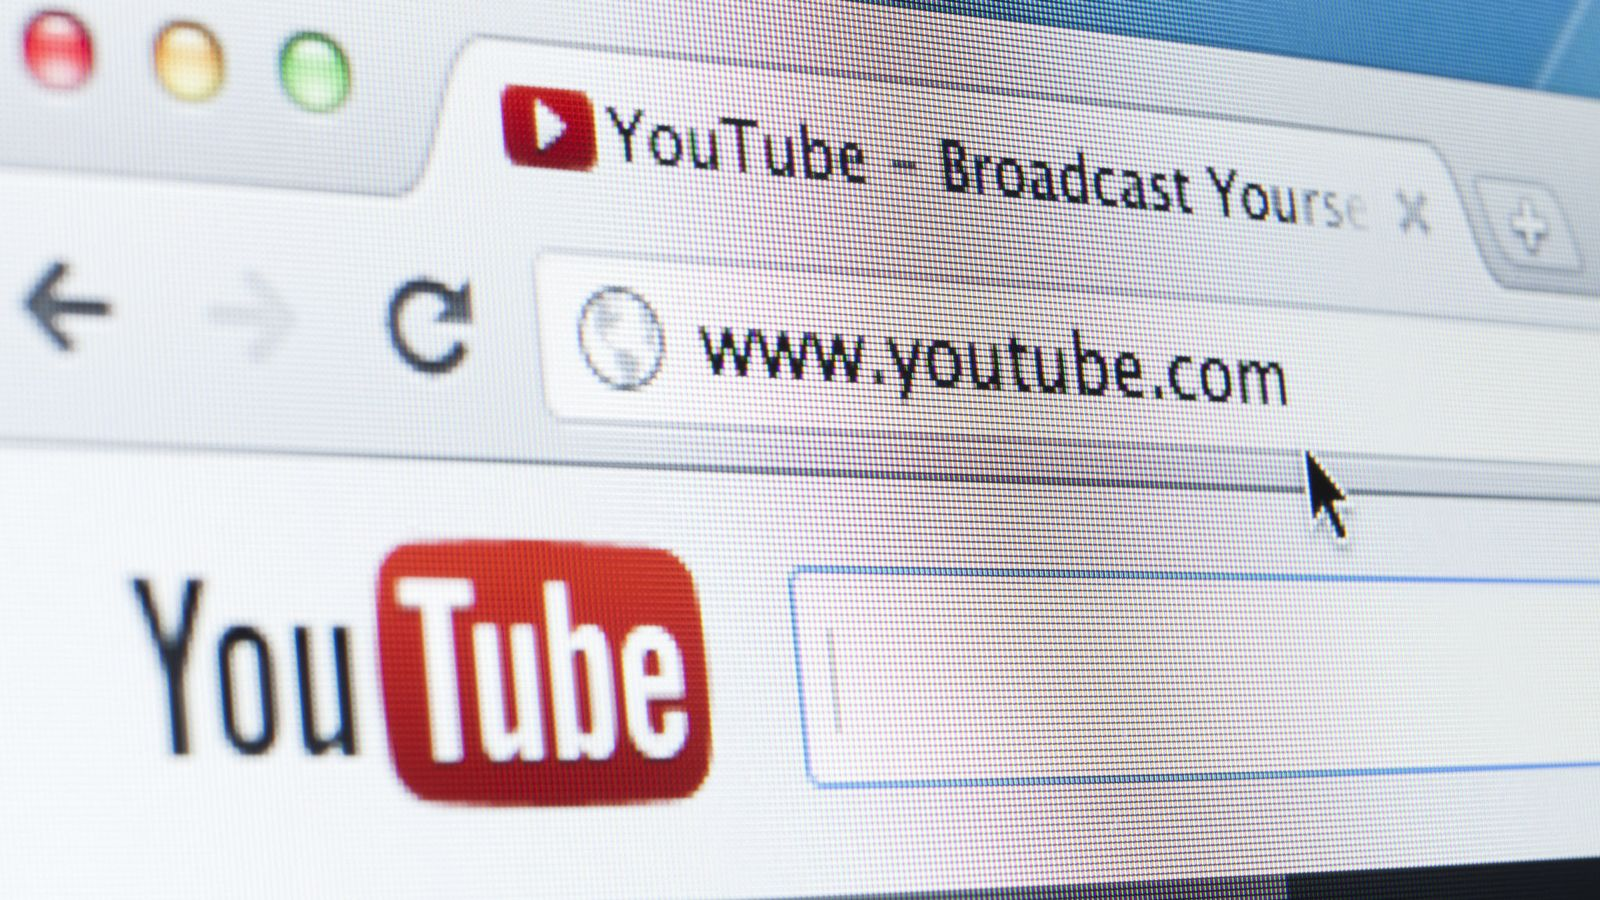 YouTube videos about prostate cancer putting patients at risk – study